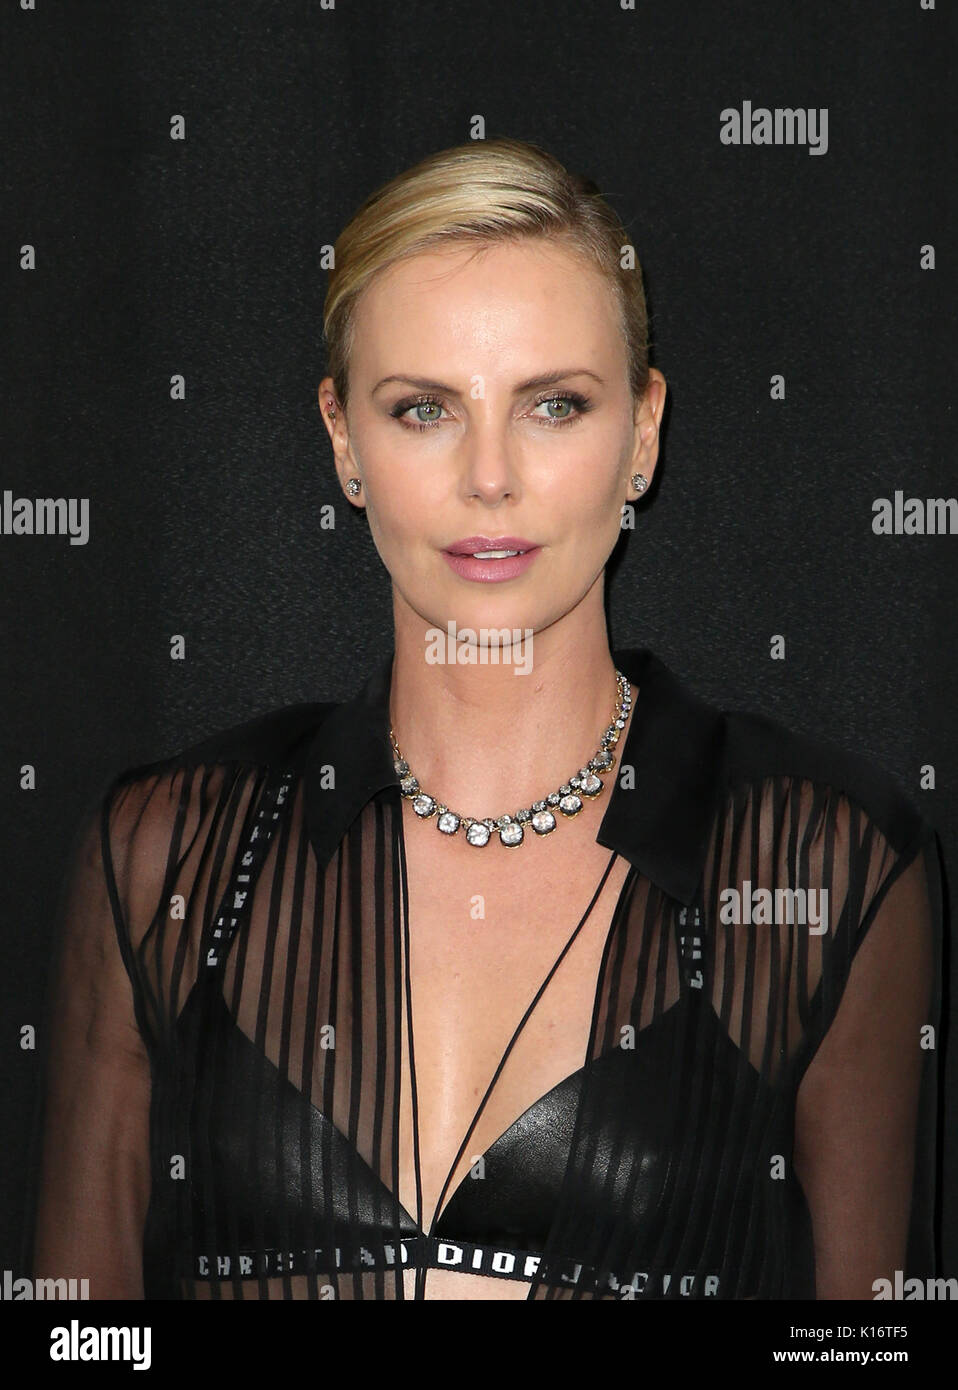 Watch Charlize theron atomic blonde premiere in los angeles video